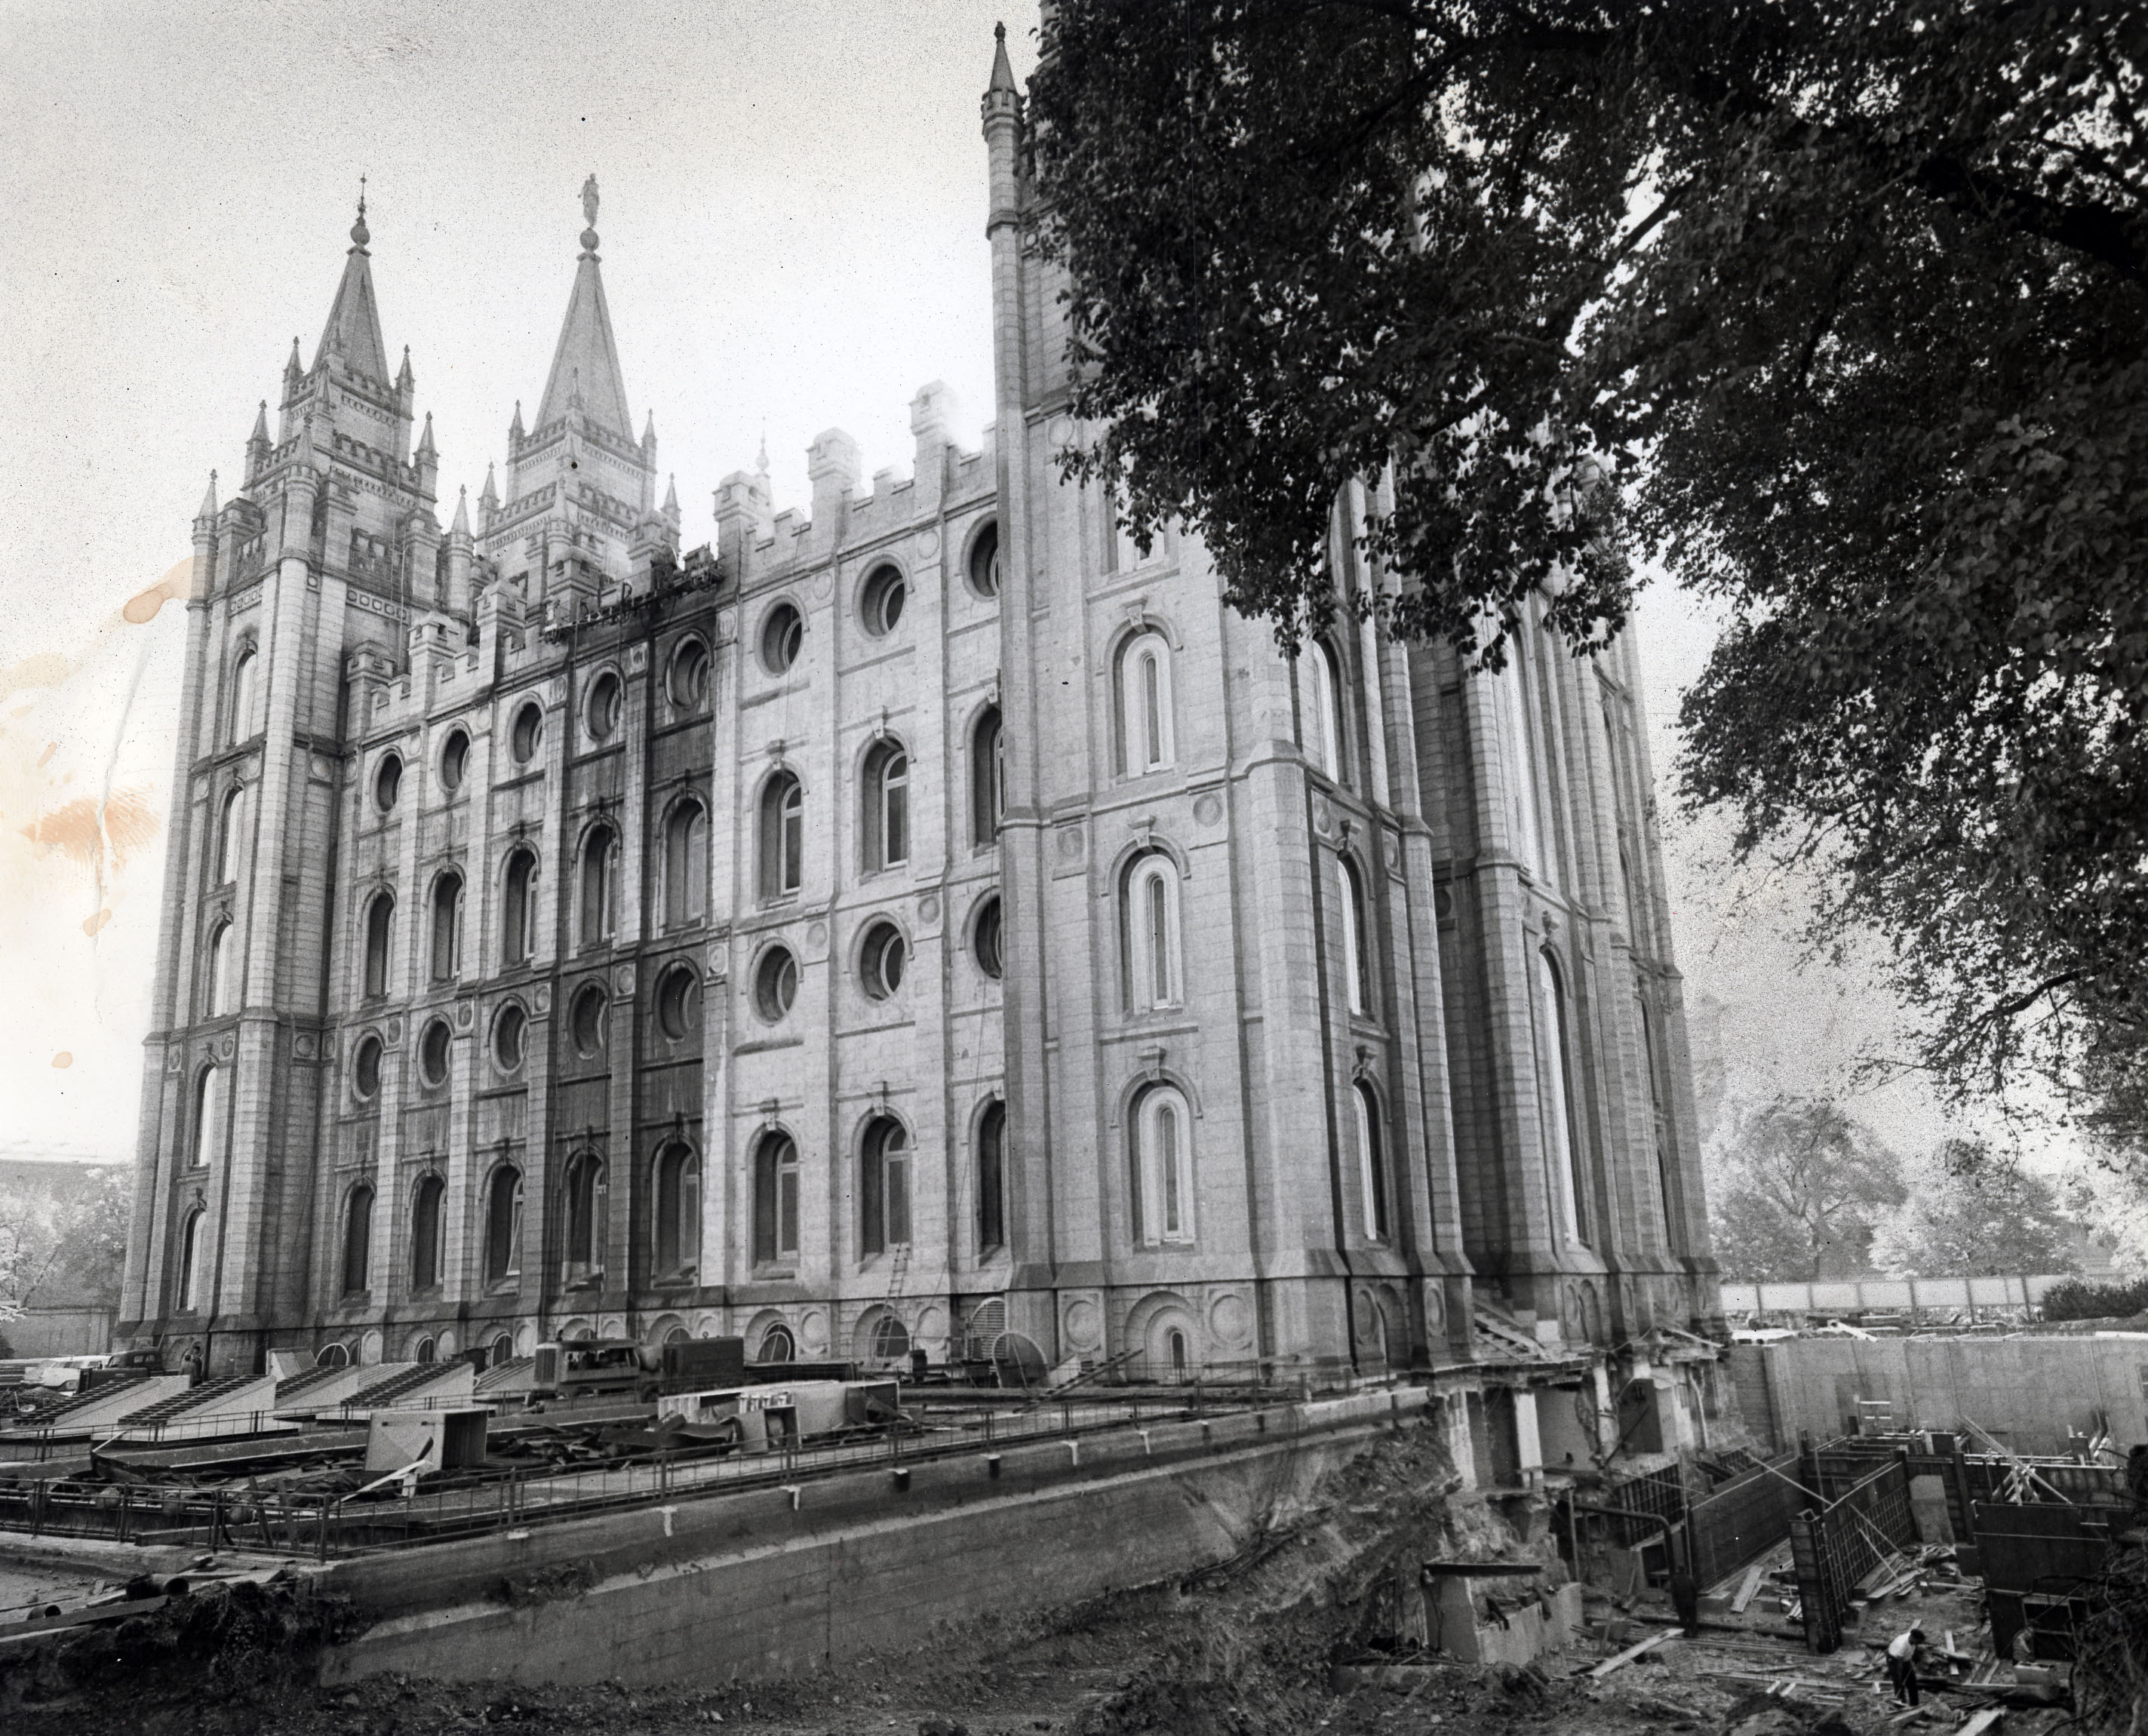 Crews of cleaners remove the patina of age from granite walls of the Salt Lake Temple on Nov. 3, 1962, to match the new granite of the sealing room annex soon that would be added on the north side of the temple. Water from cleaning equipment adds contrast to a section of wall receiving the new look.